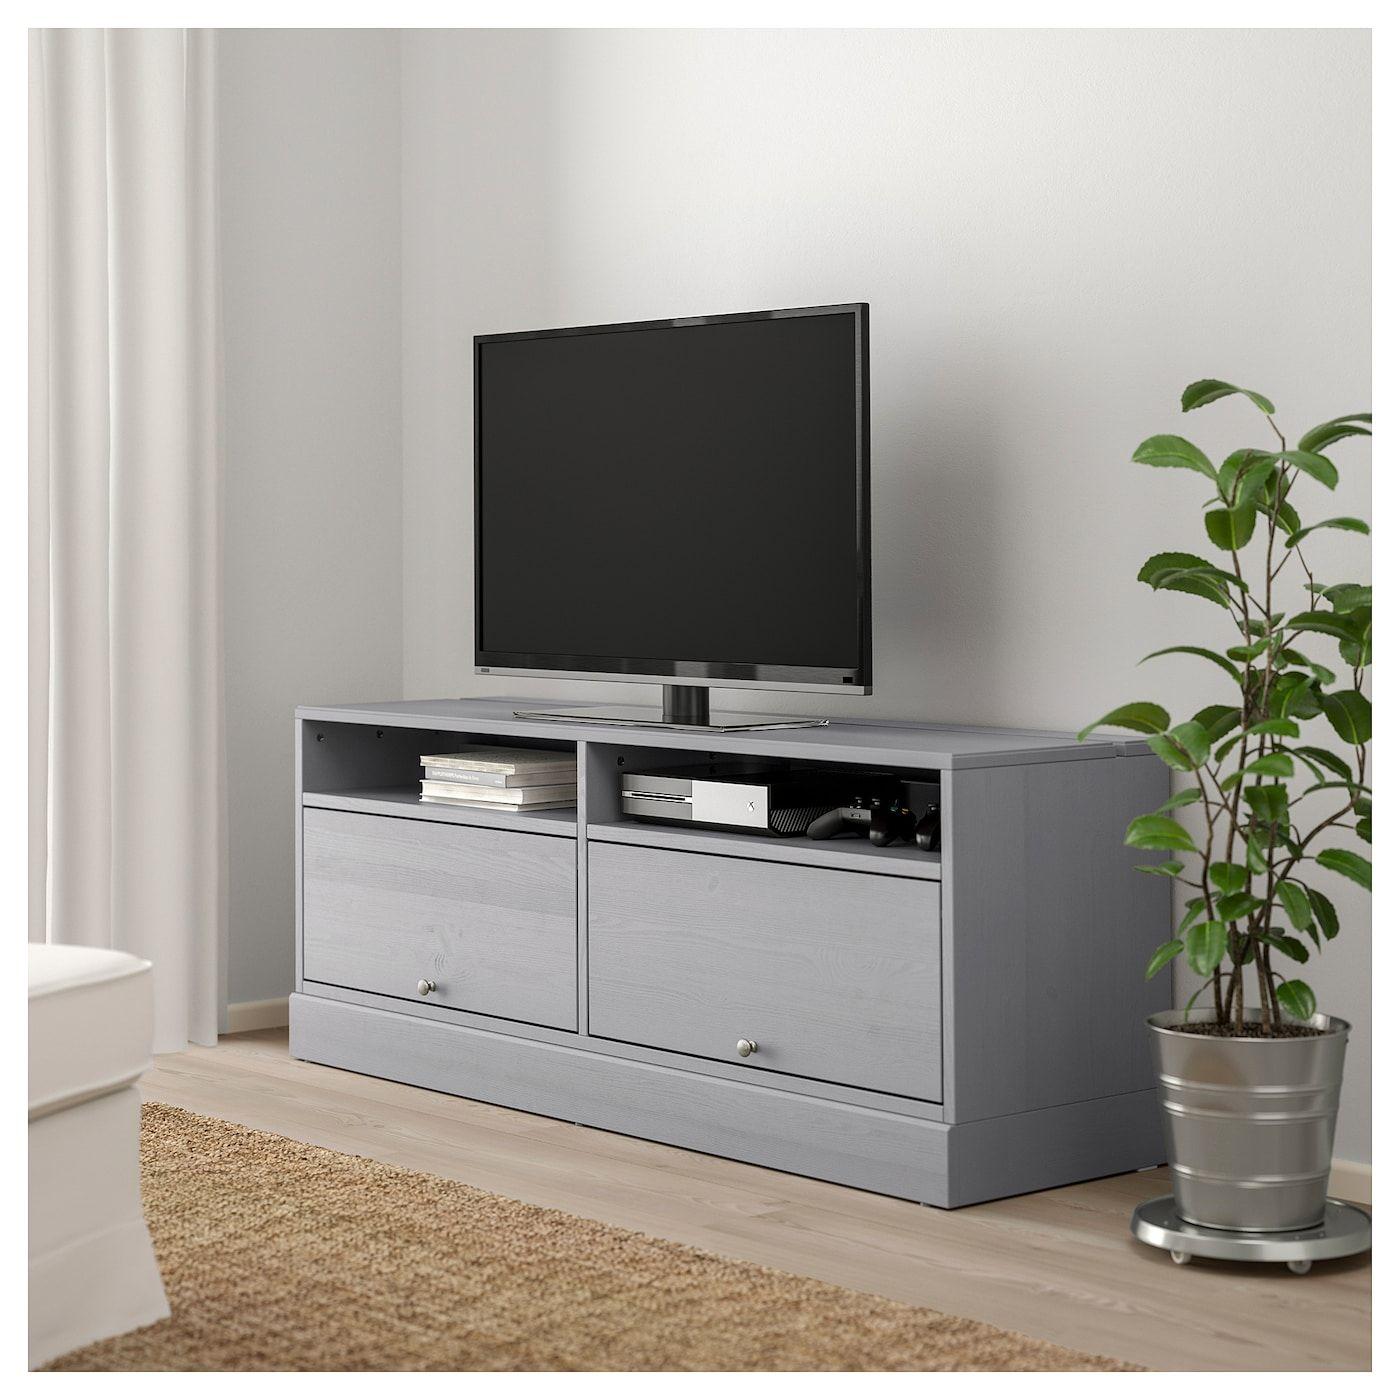 HAVSTA TV bench with plinth grey IKEA